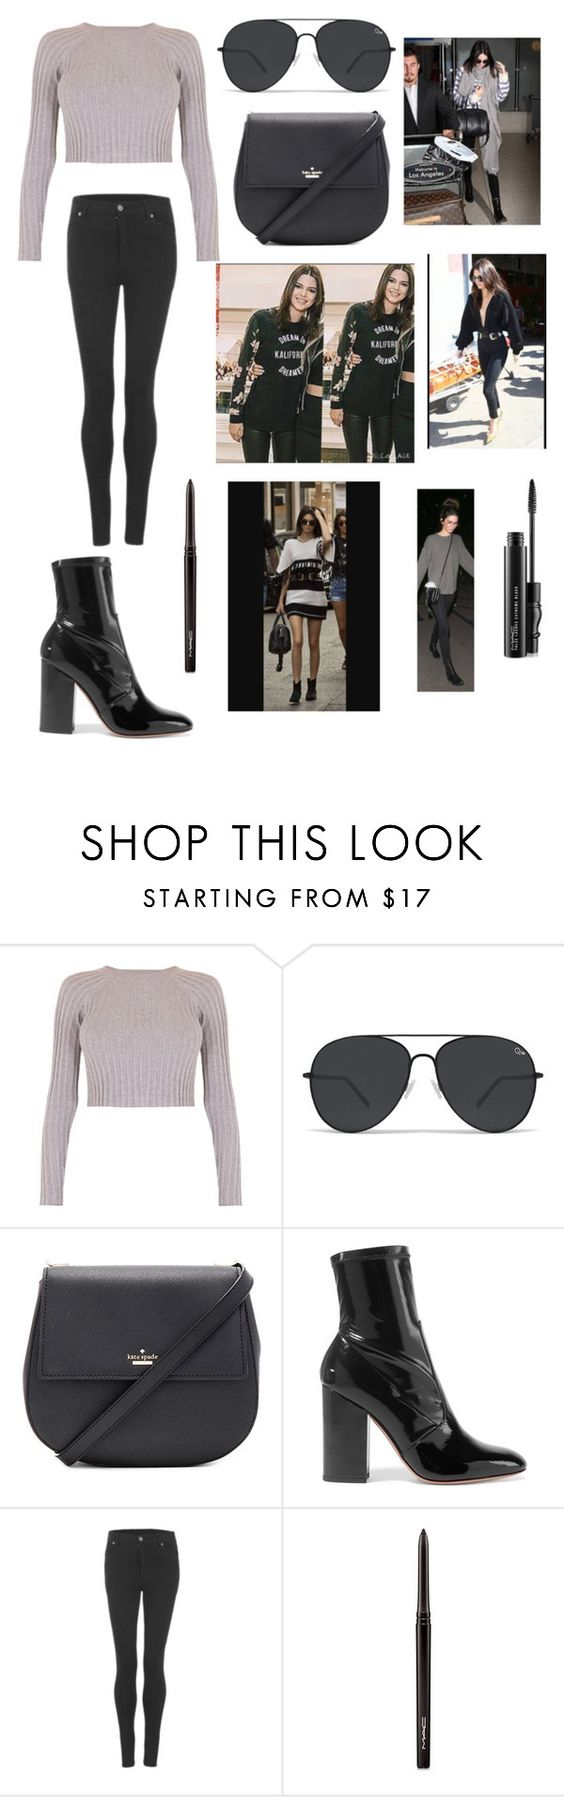 """Asegkñpfgnloyyu"" by nicoleoj ❤ liked on Polyvore featuring For Love & Lemons, Kate Spade, Valentino, Cheap Monday and MAC Cosmetics"